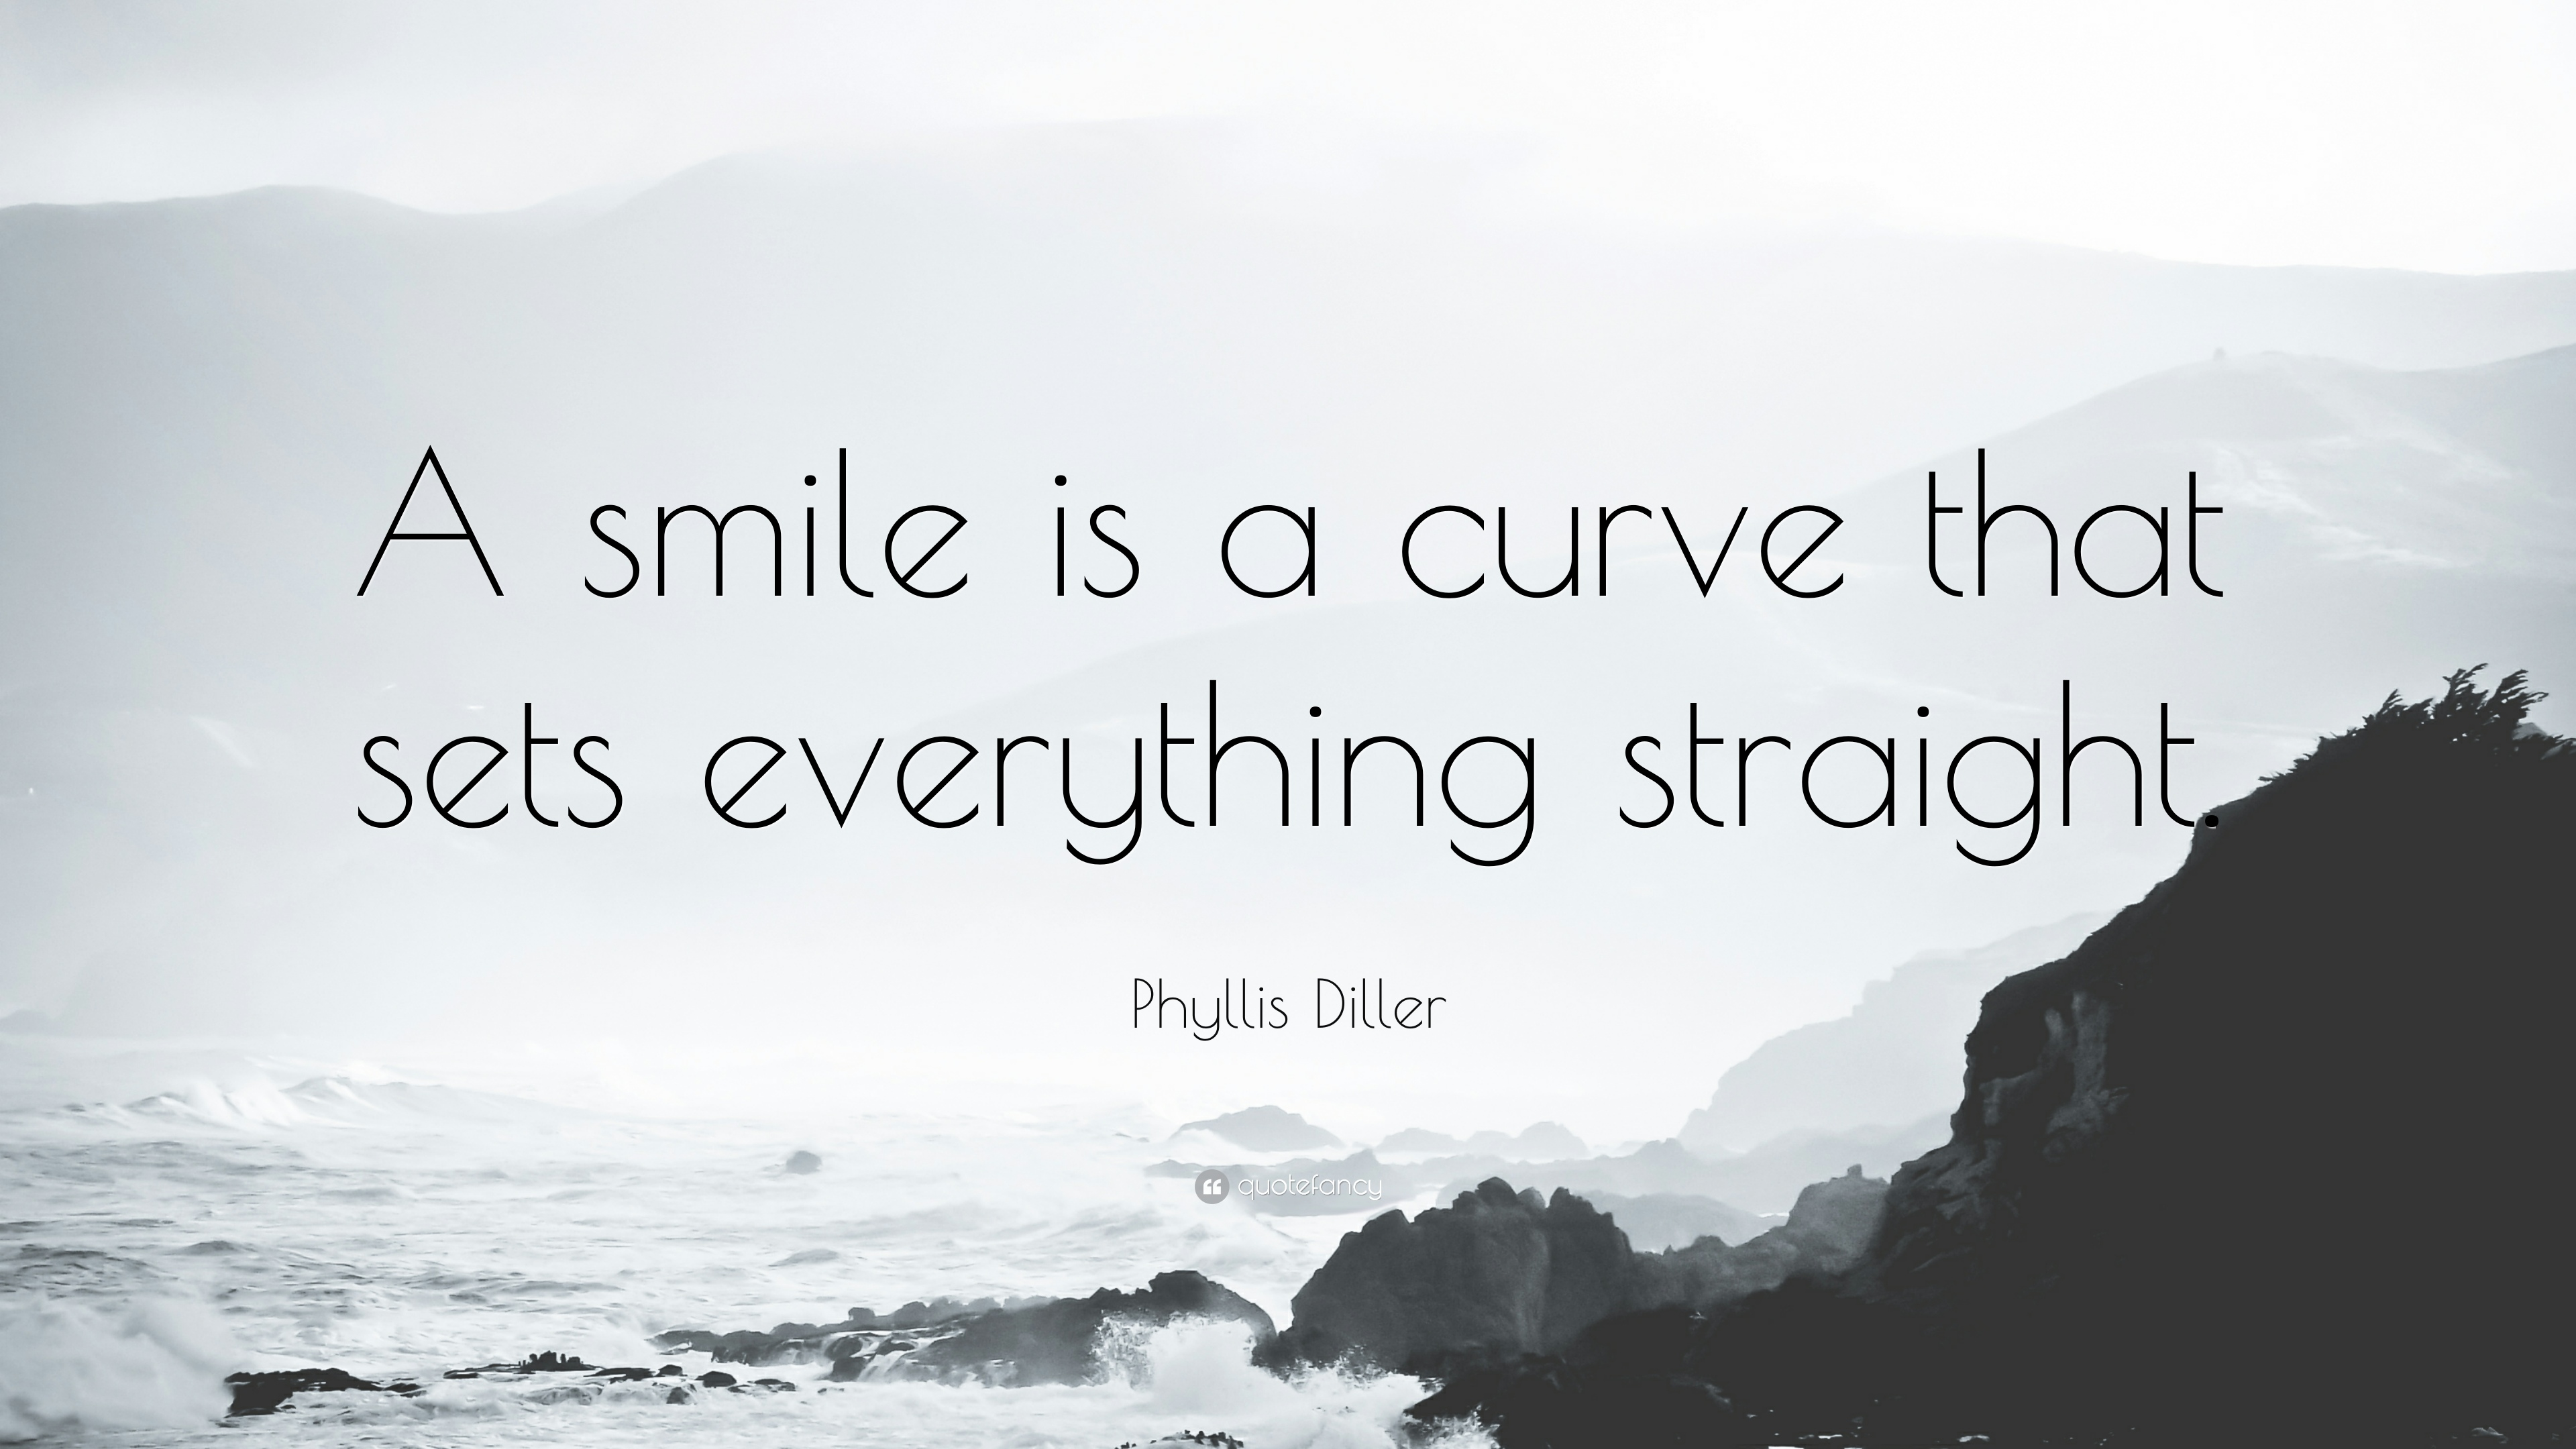 Quotes About Smiles New Smile Quotes 40 Wallpapers  Quotefancy